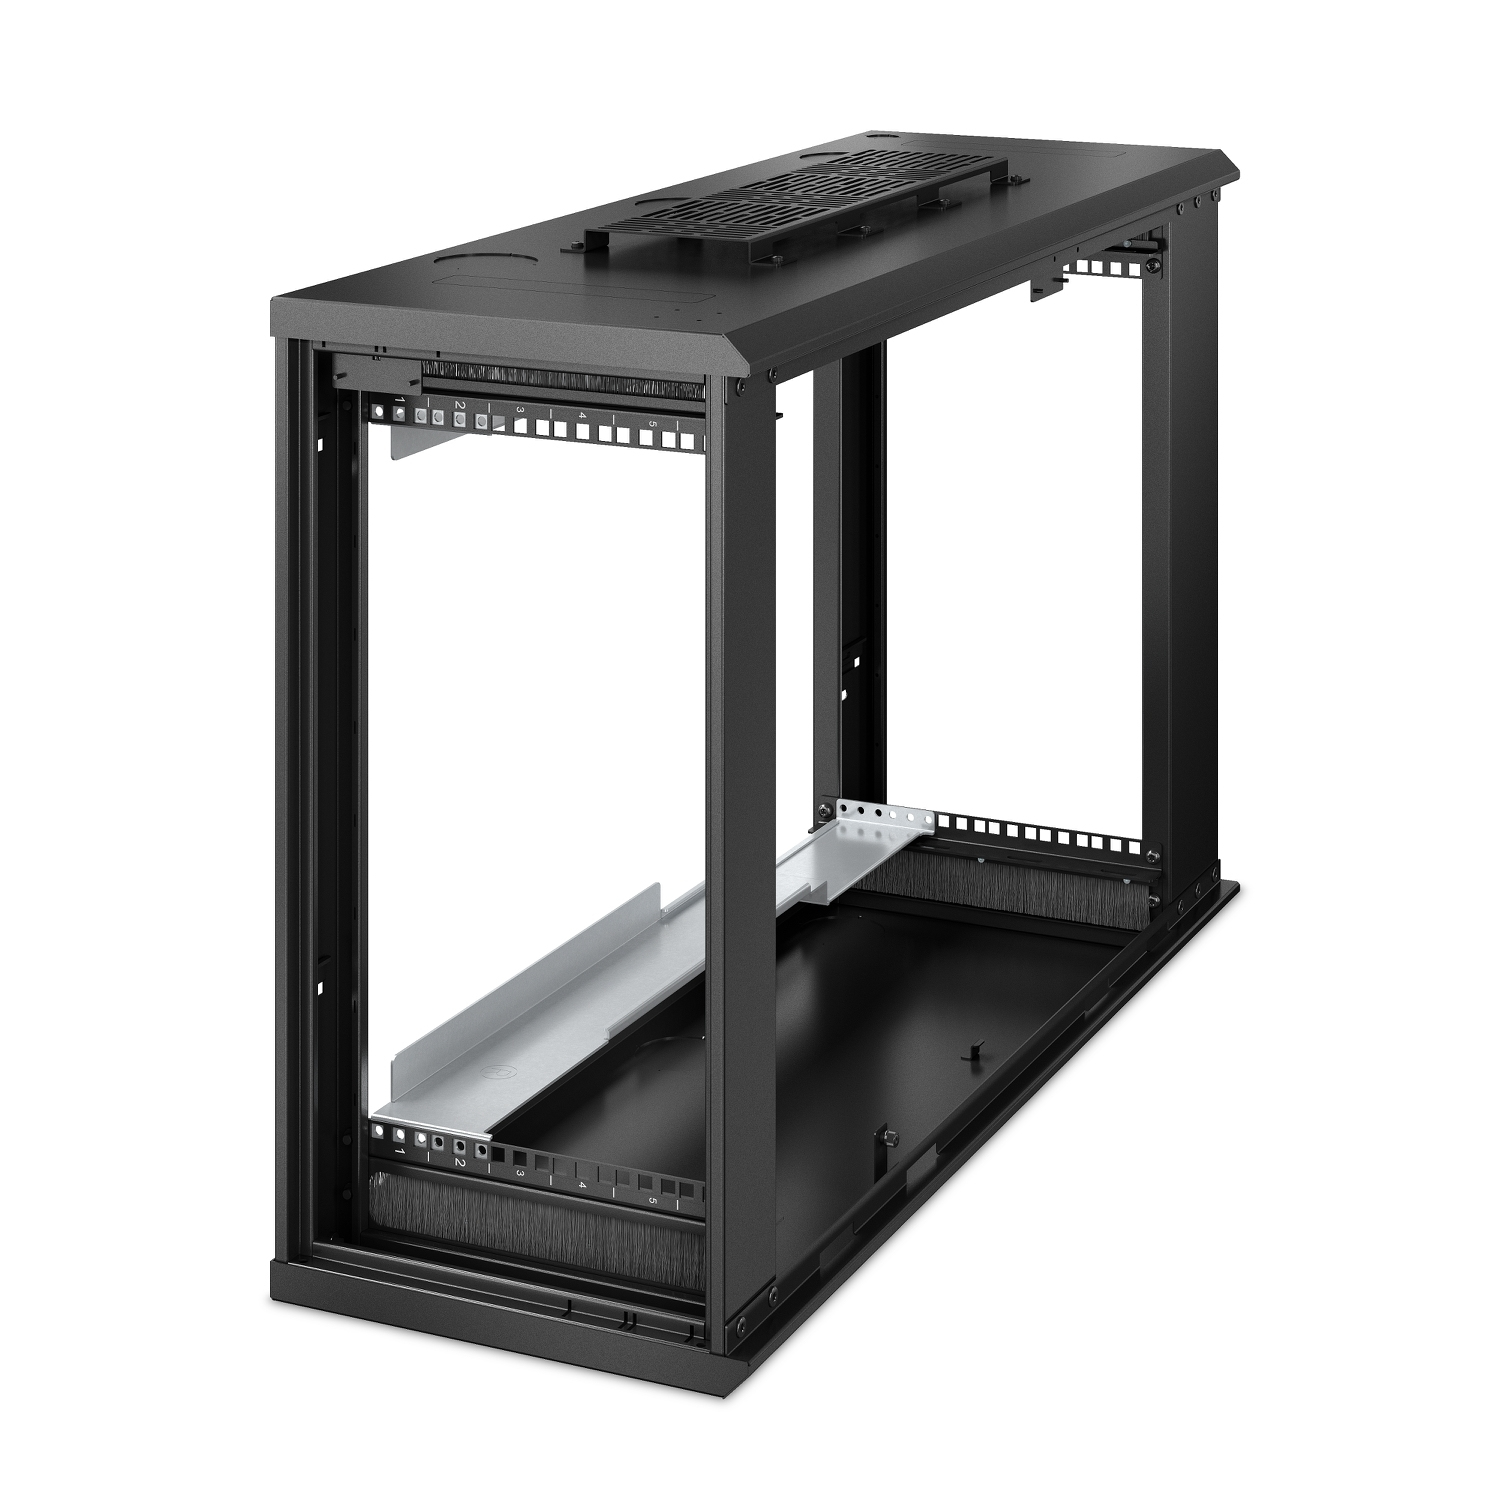 APC AR106VI rack cabinet 6U Wall mounted rack Black